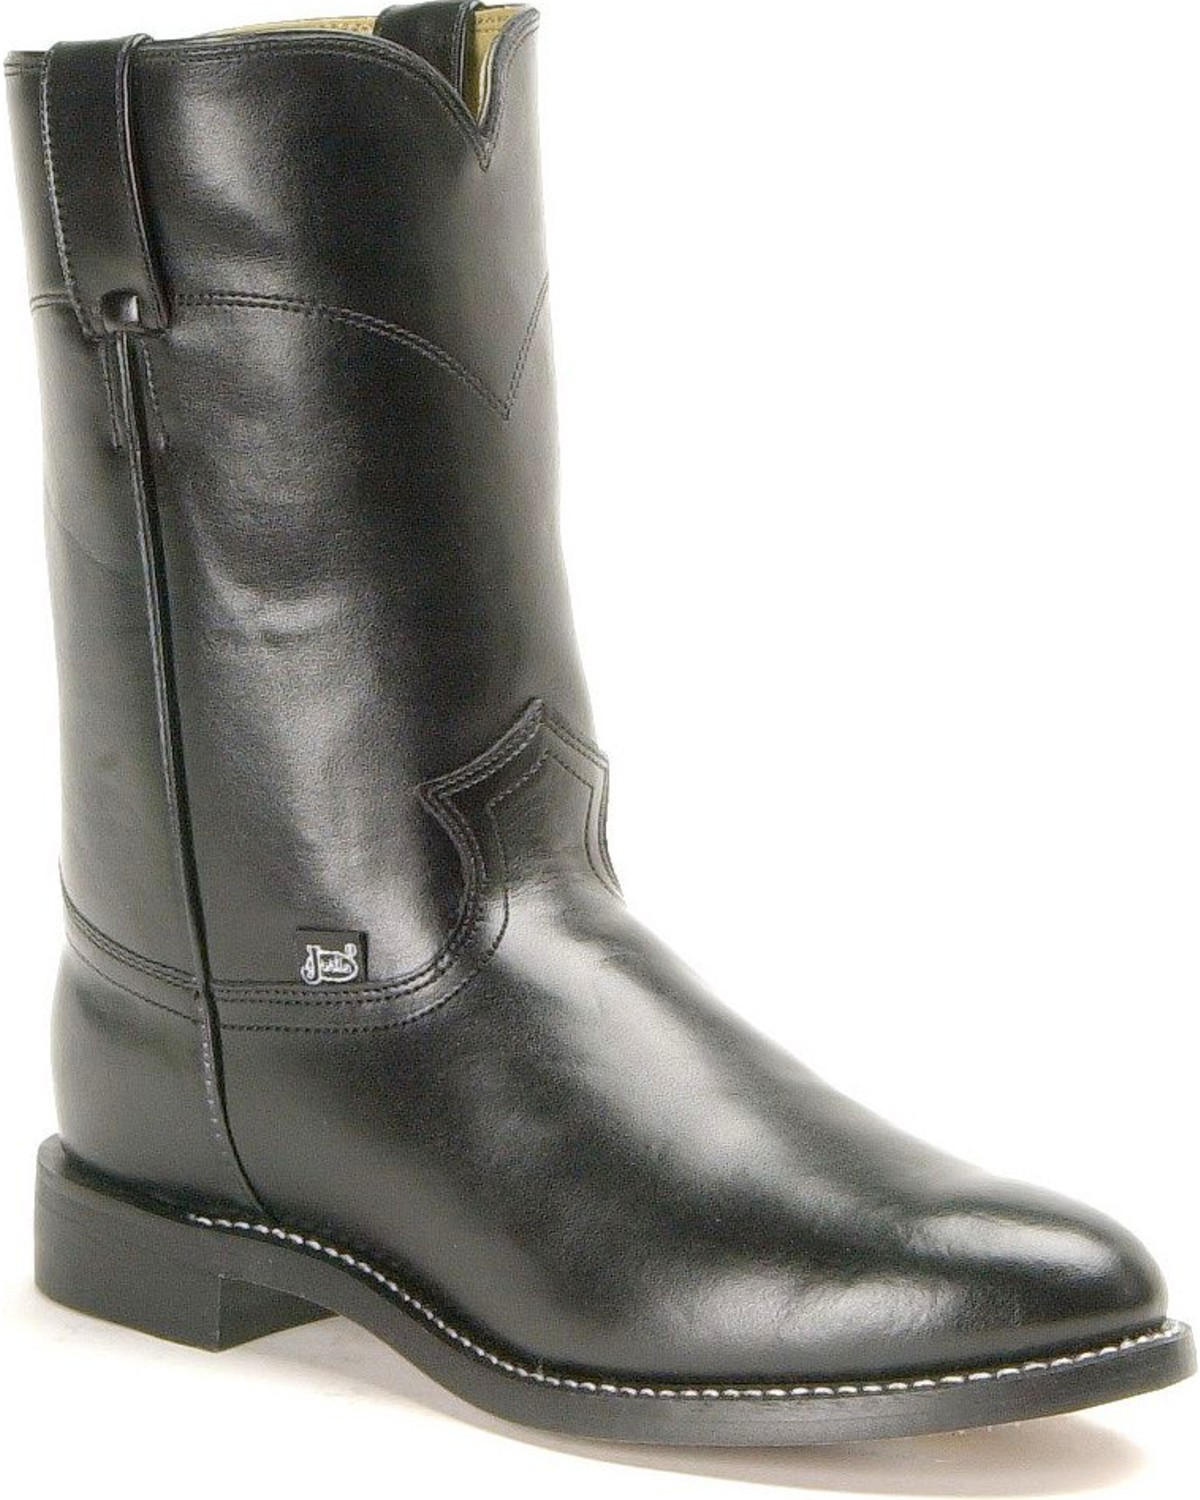 Boots clipart old boot. Justin for women men